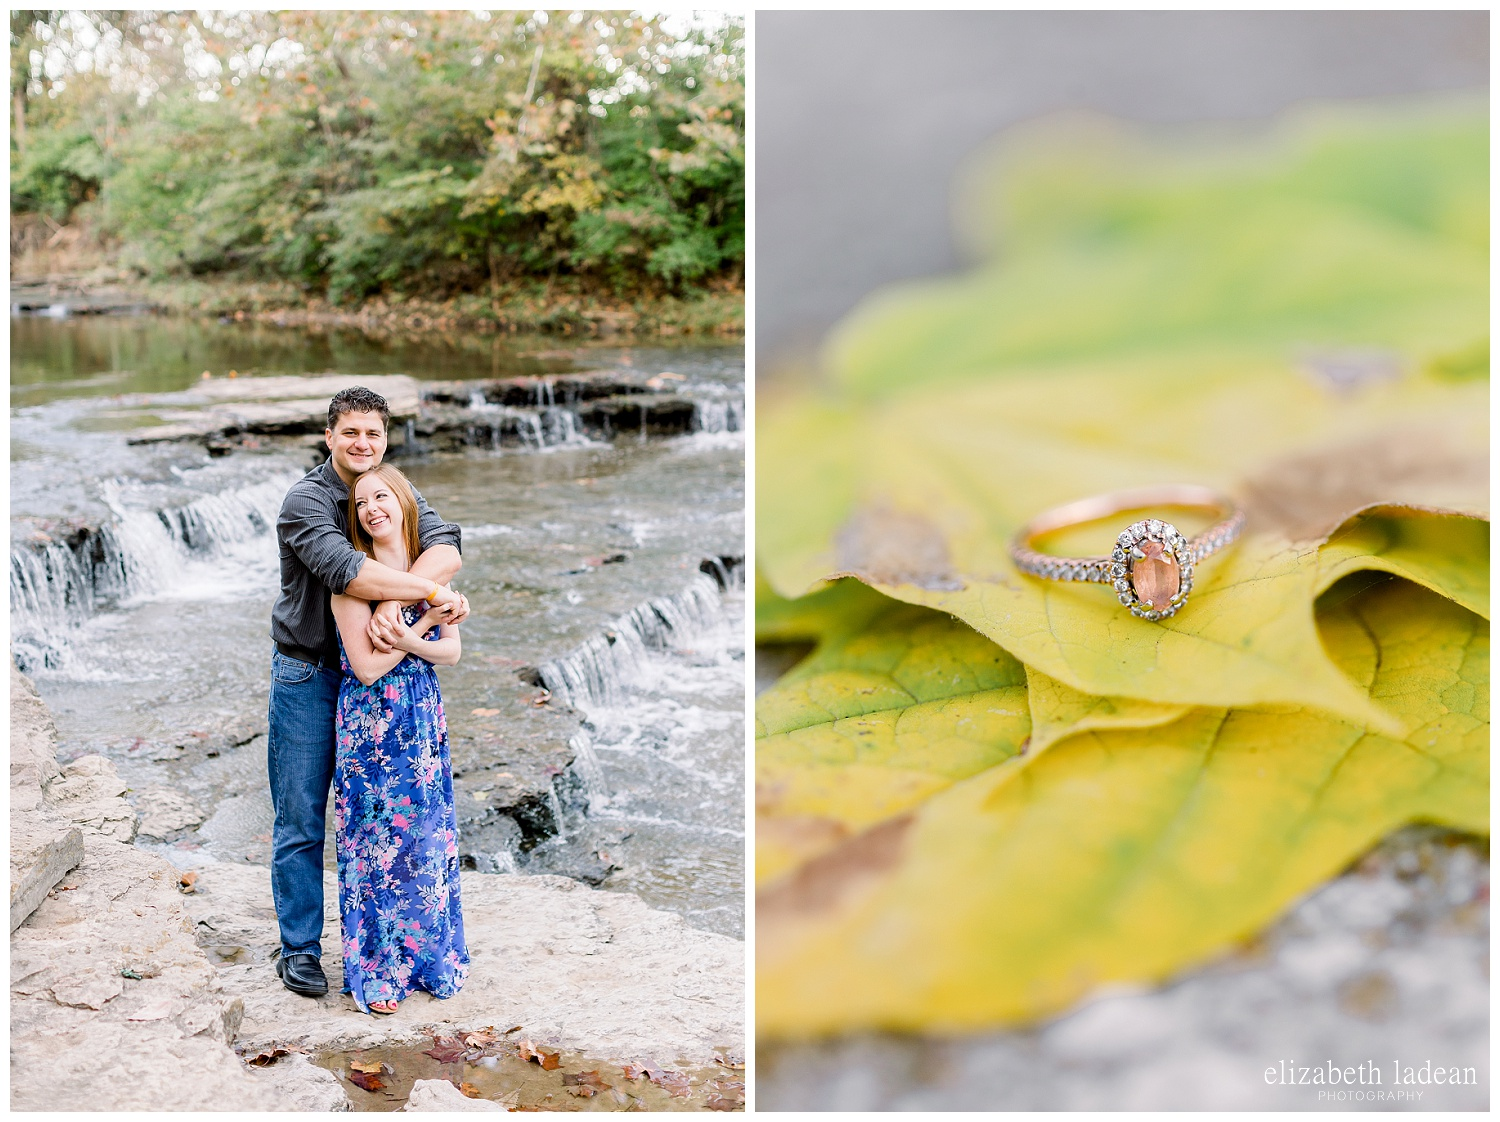 Northland-KC-Fall-Engagement-Photos-with-dog-A+B-2018-elizabeth-ladean-photography-photo_1492.jpg